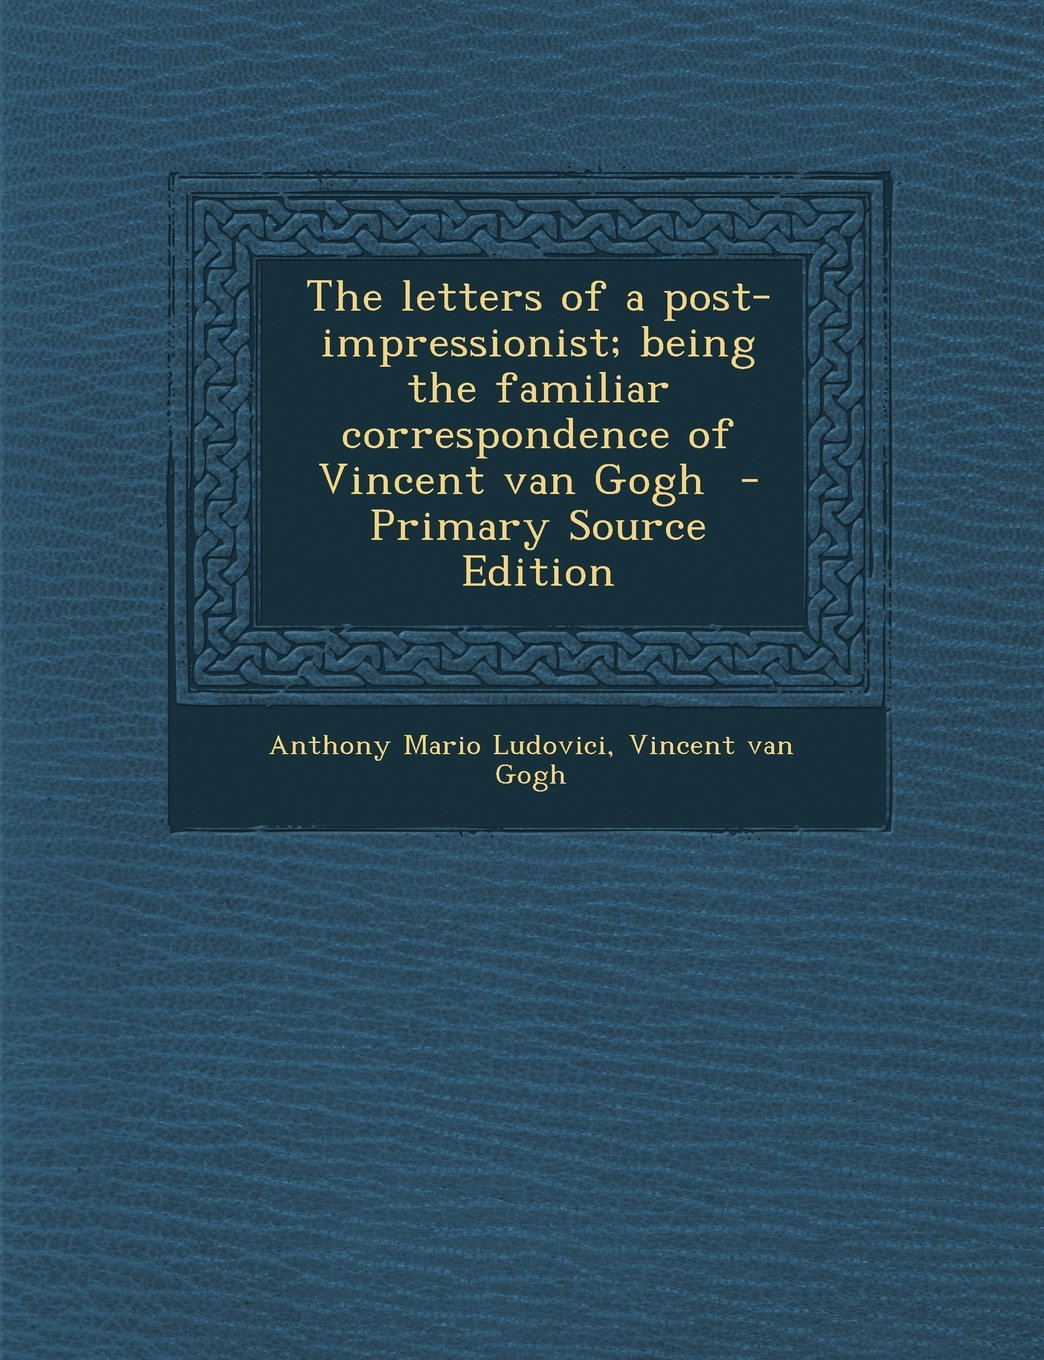 The letters of a post-impressionist; being the familiar correspondence of Vincent van Gogh ebook